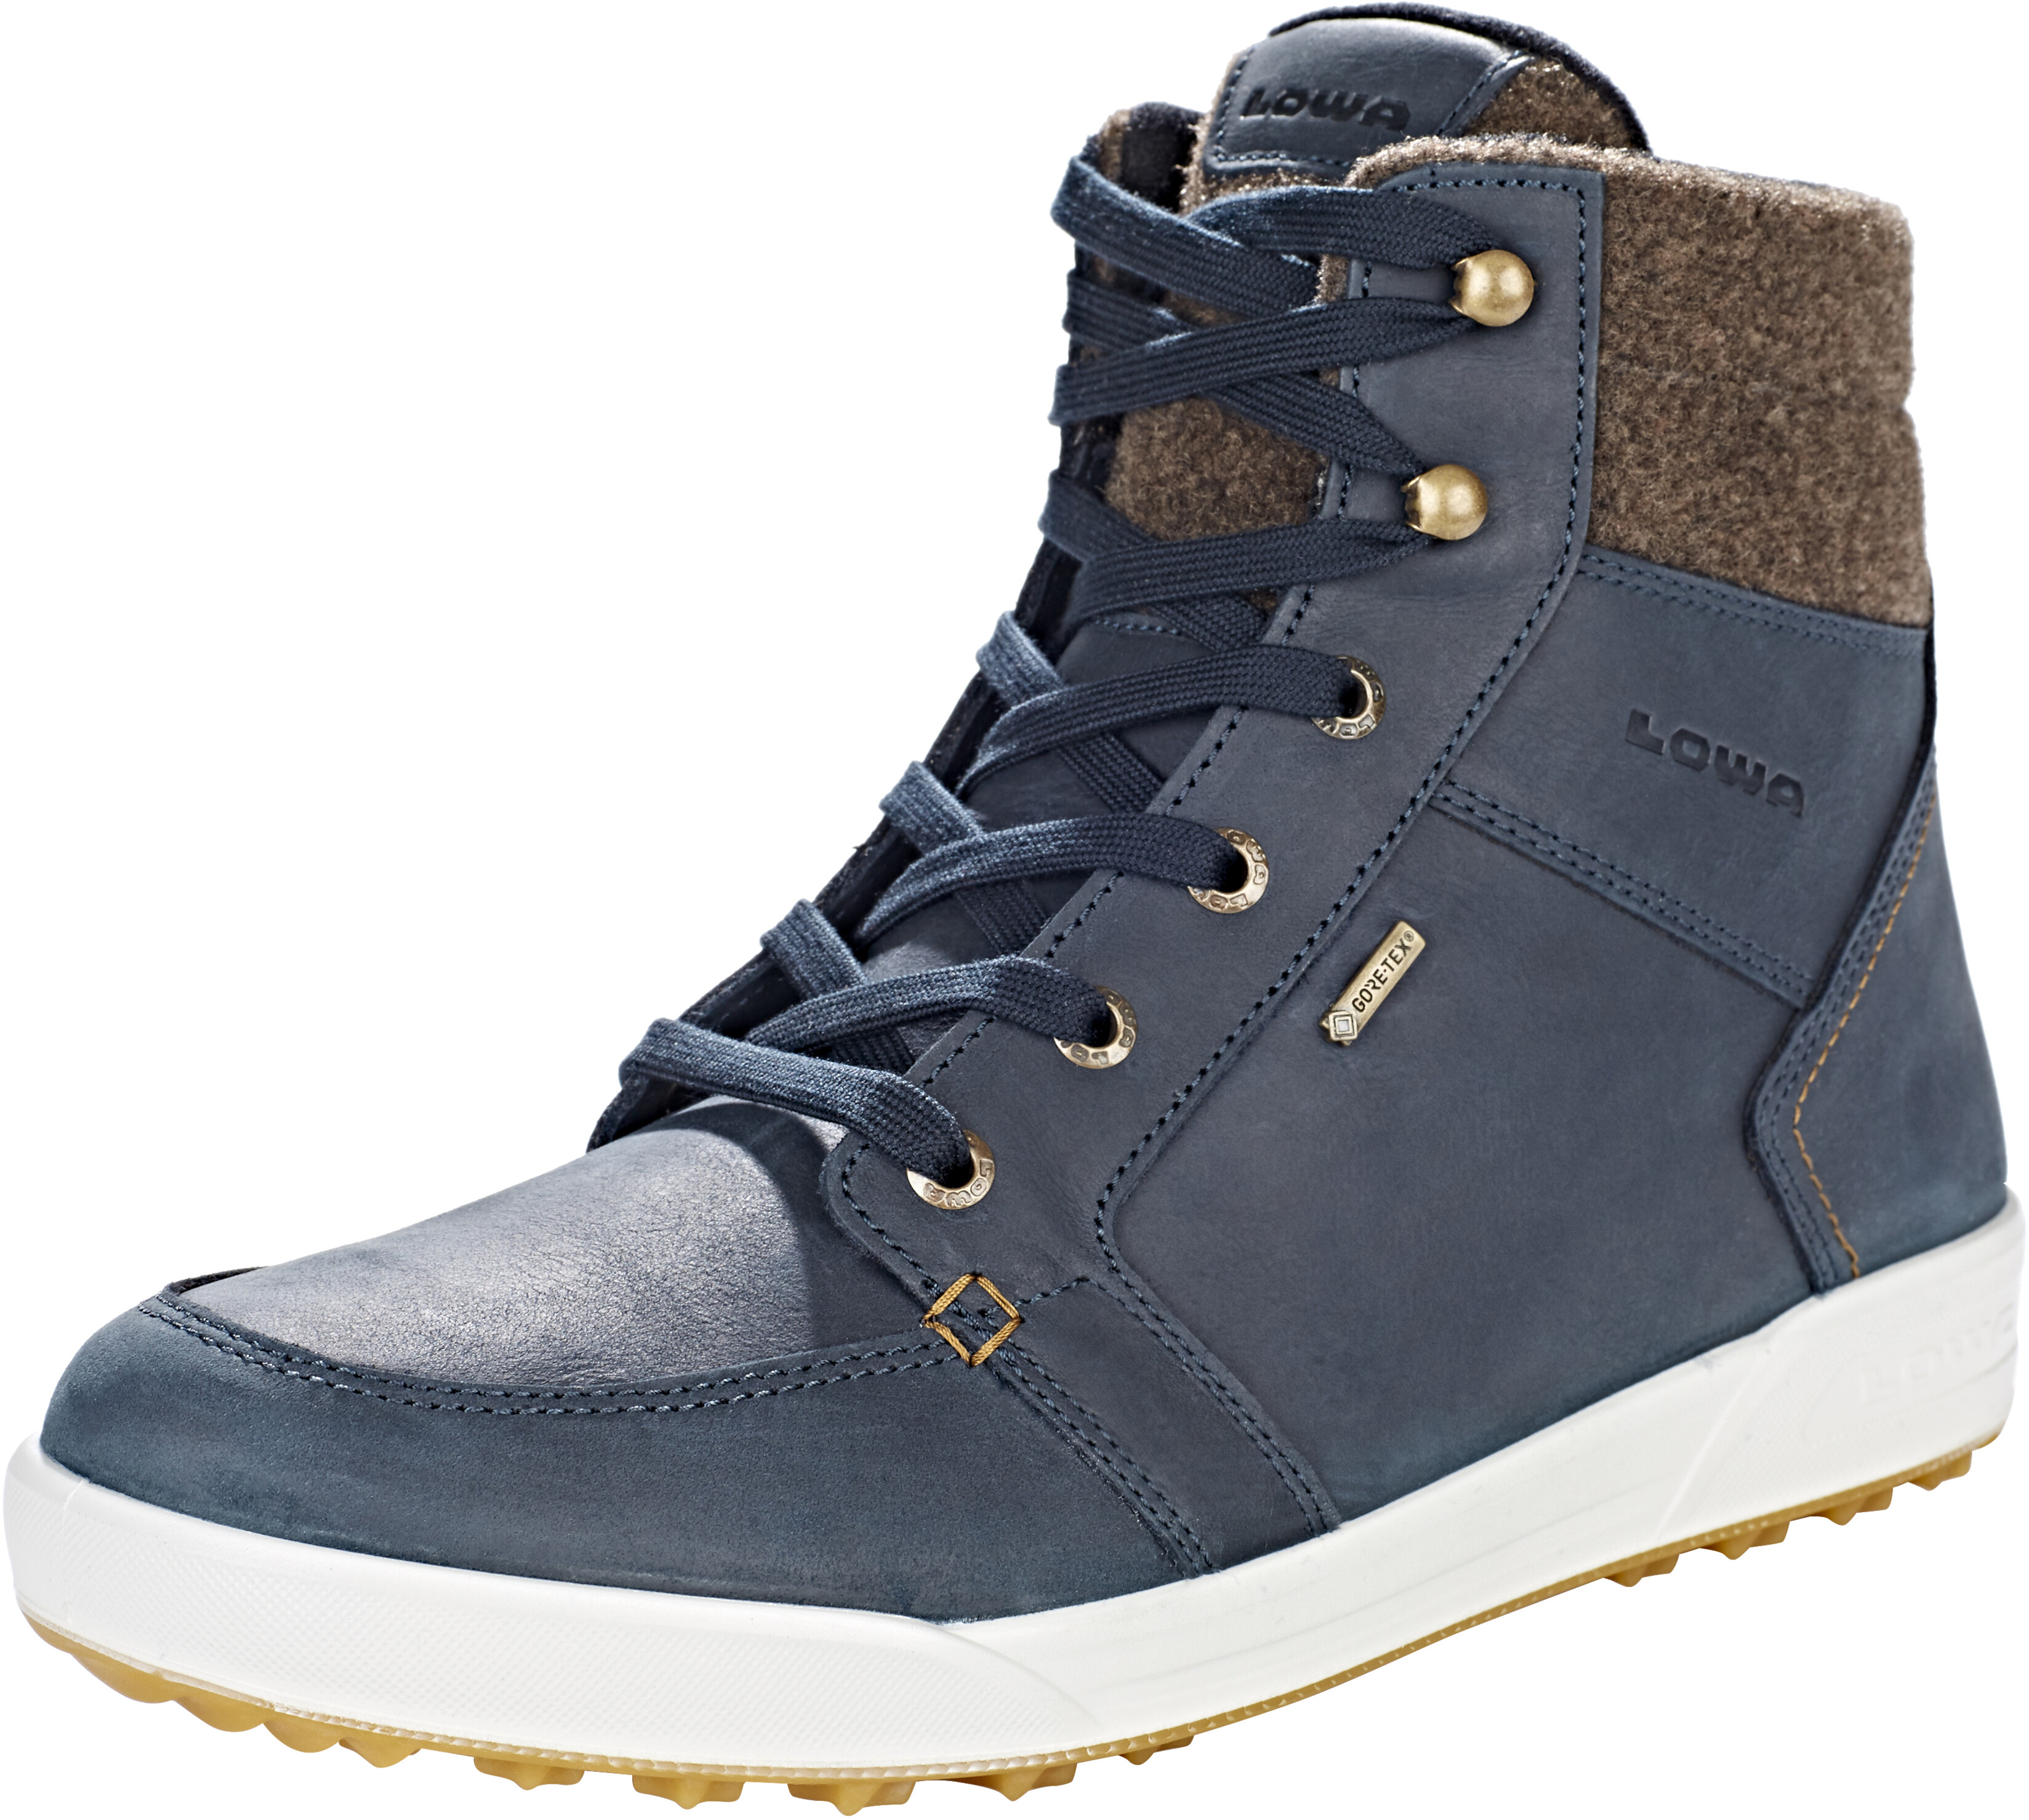 wholesale sales clearance prices half off Lowa Molveno GTX Mid Boots Men navy/brown